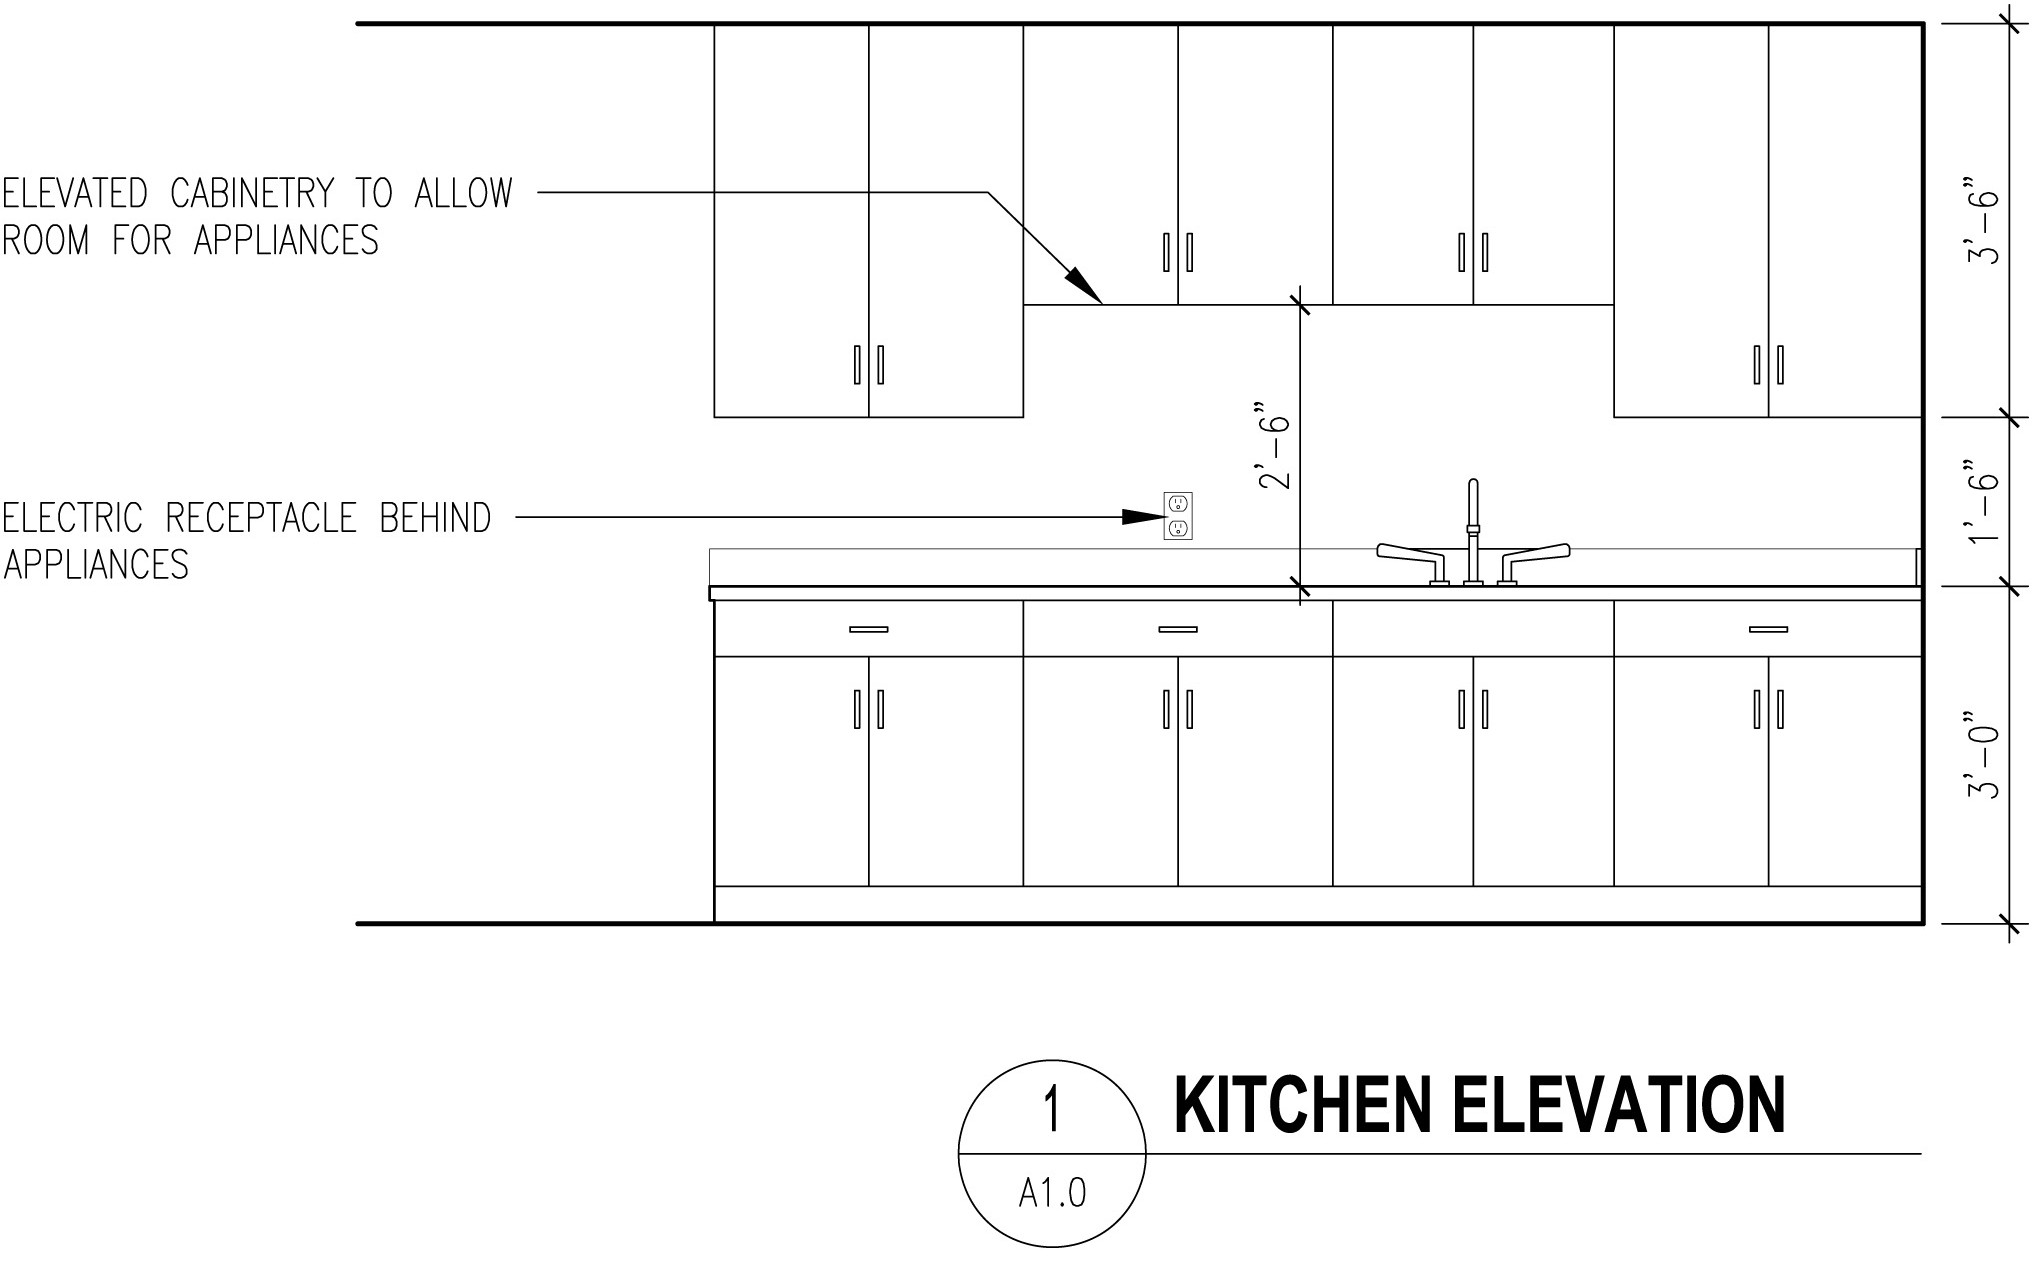 Renovating Your Kitchen? These Tips Will Make It Easier To